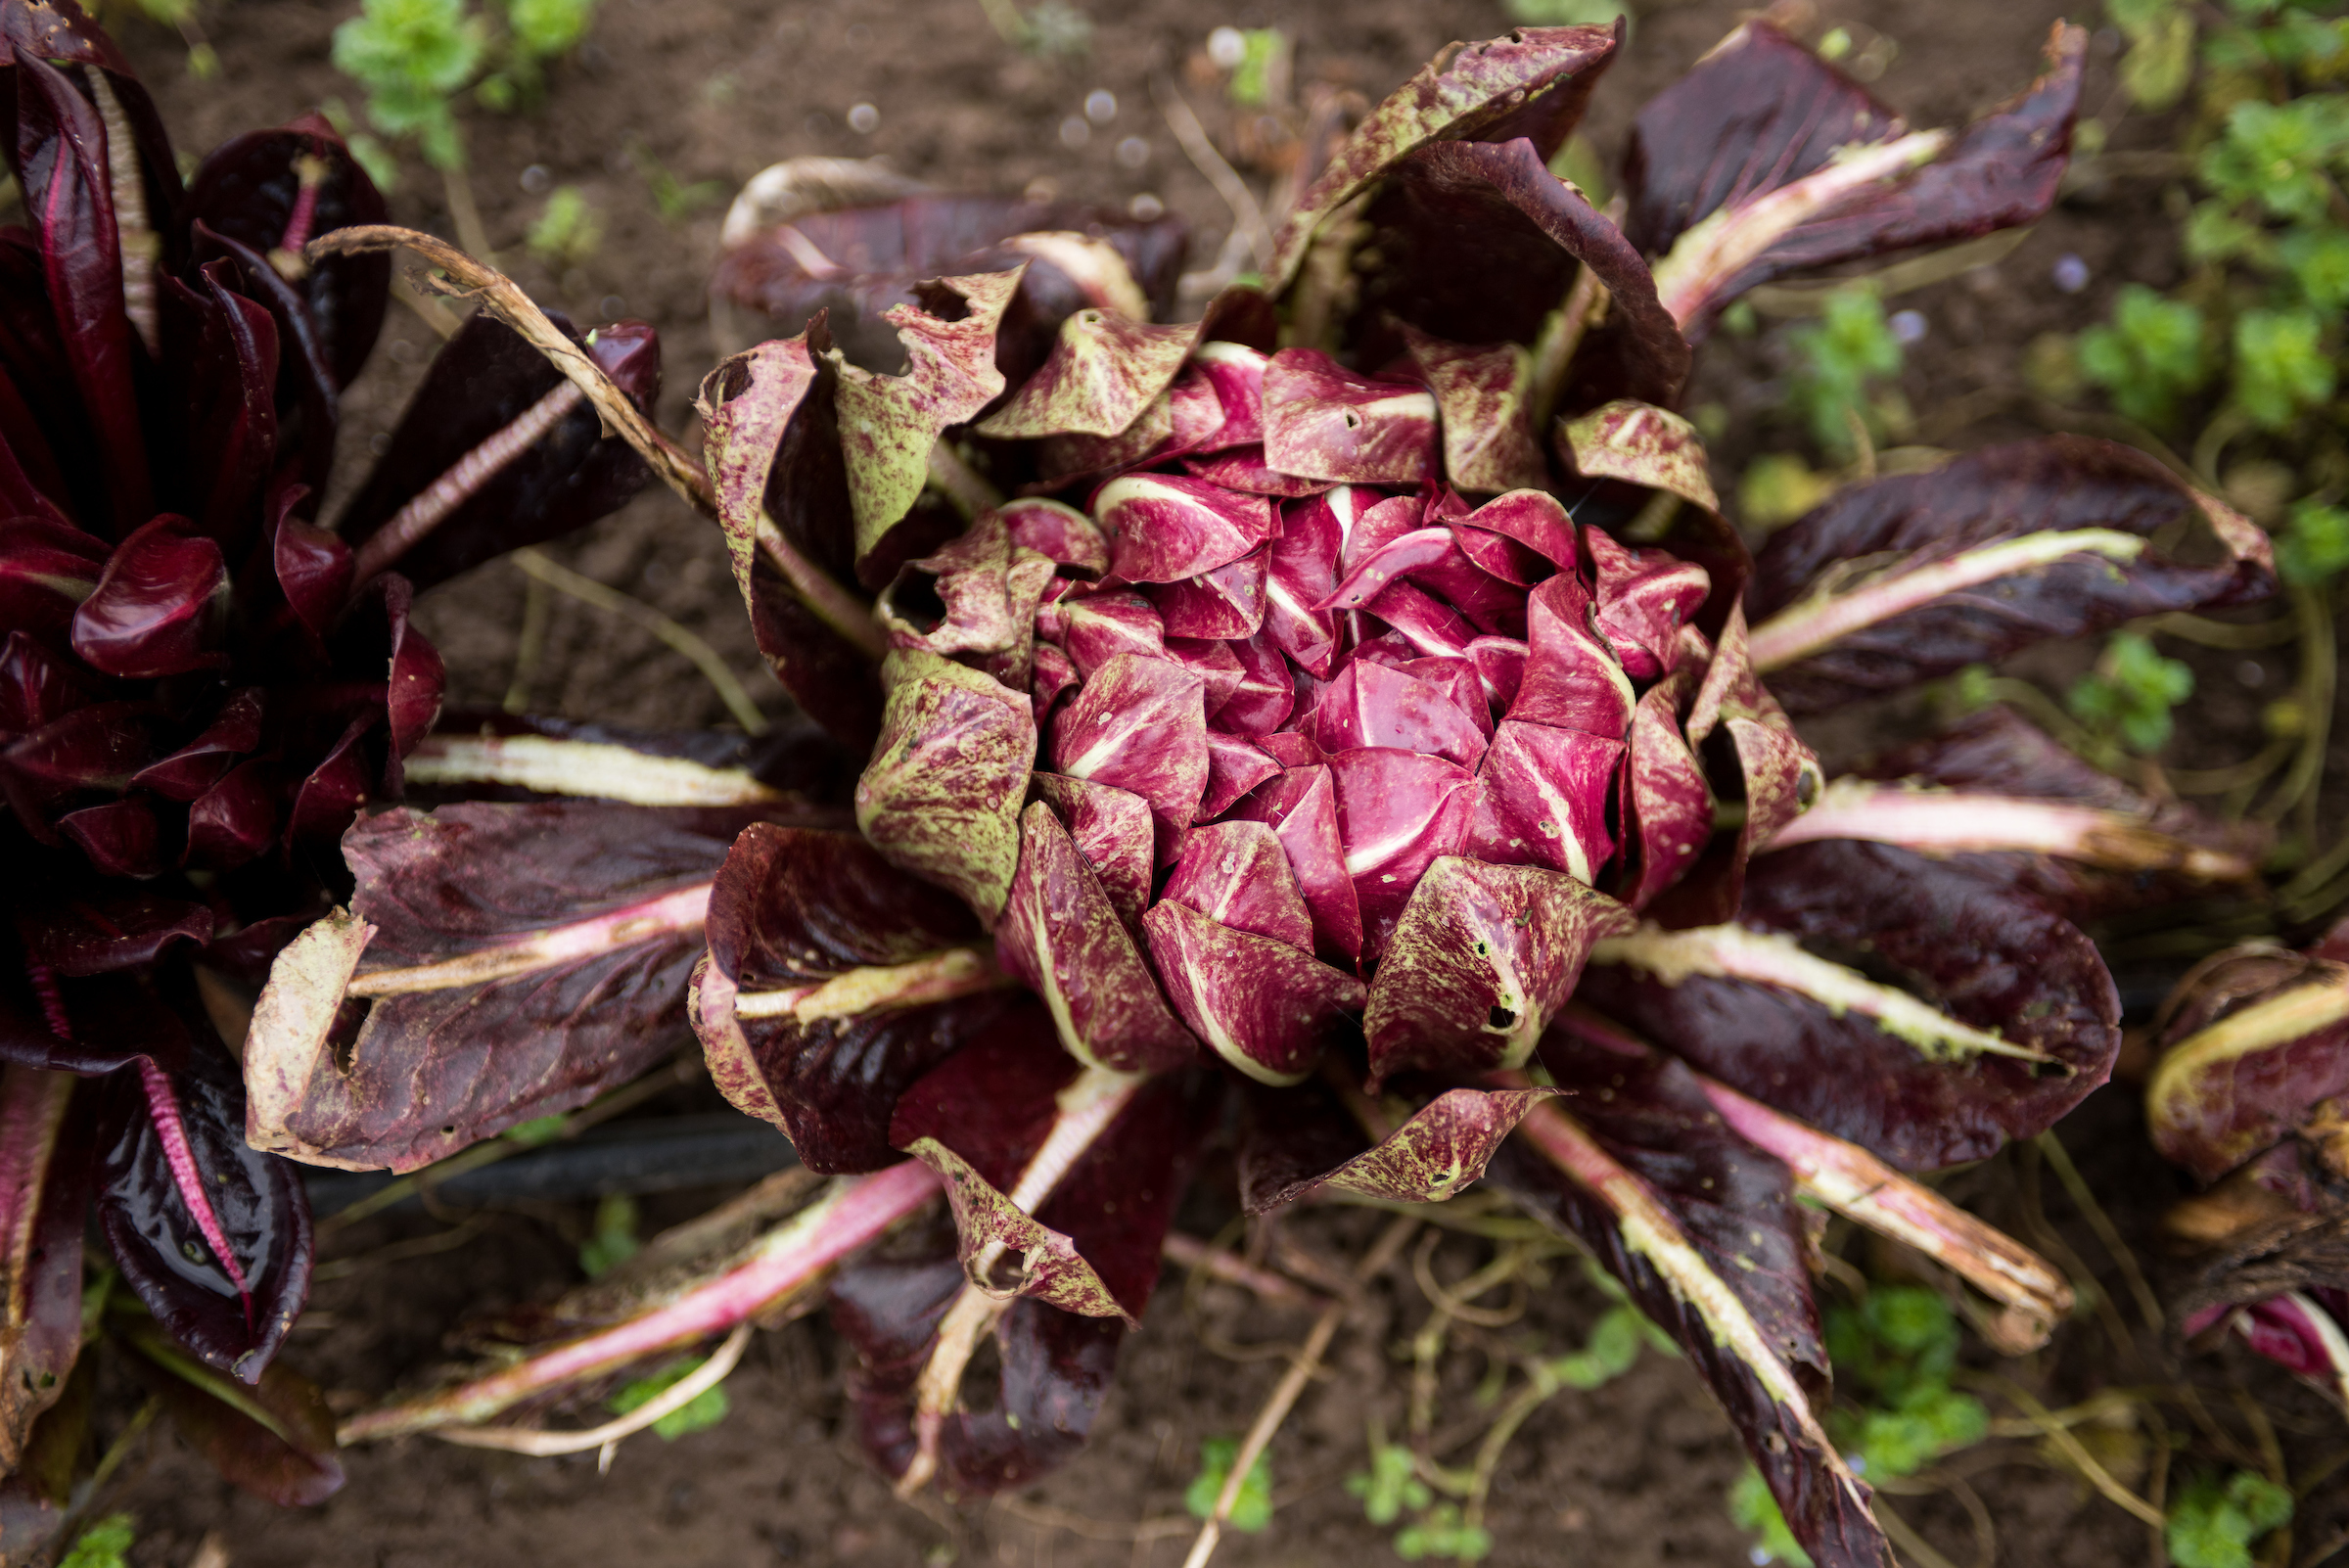 "Beautiful ""Arch Cape"" Treviso-type radicchio developed by Anthony & Carol Boutard at Ayers Creek Farm in Gaston, OR. Photo by Shawn Linehan."